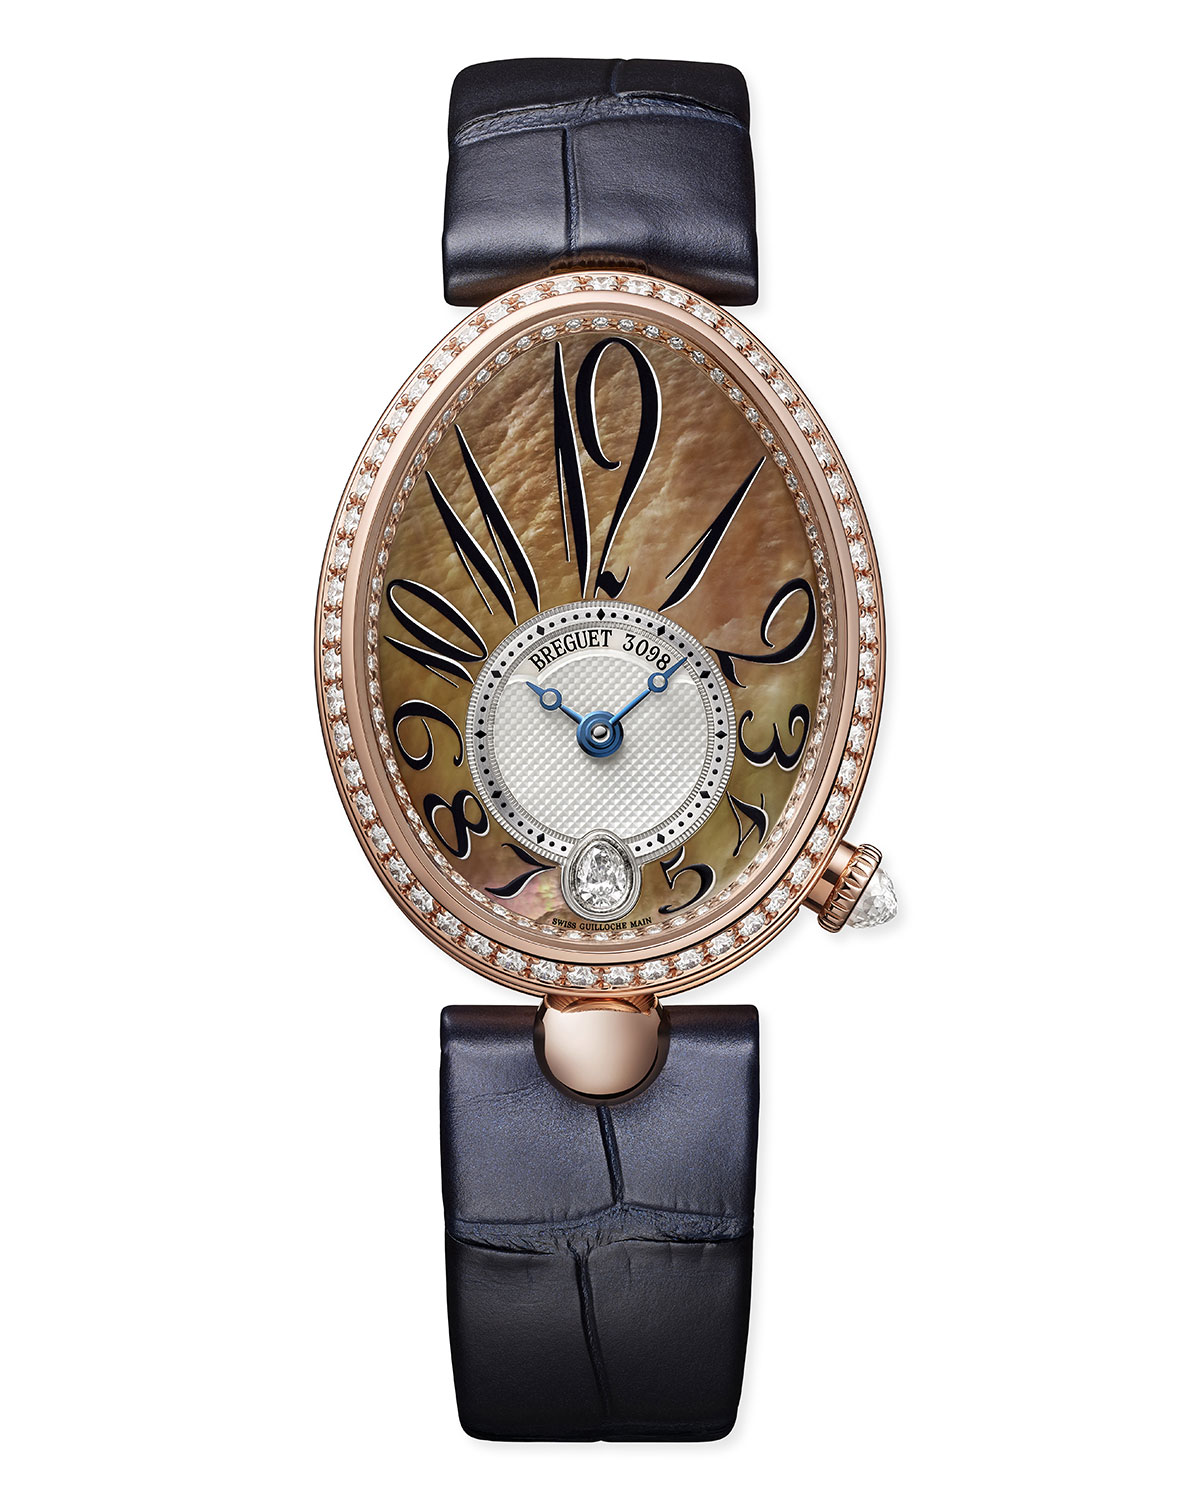 Breguet 18k Rose Gold Diamond-Bezel Watch w/ Alligator Strap, Champagne